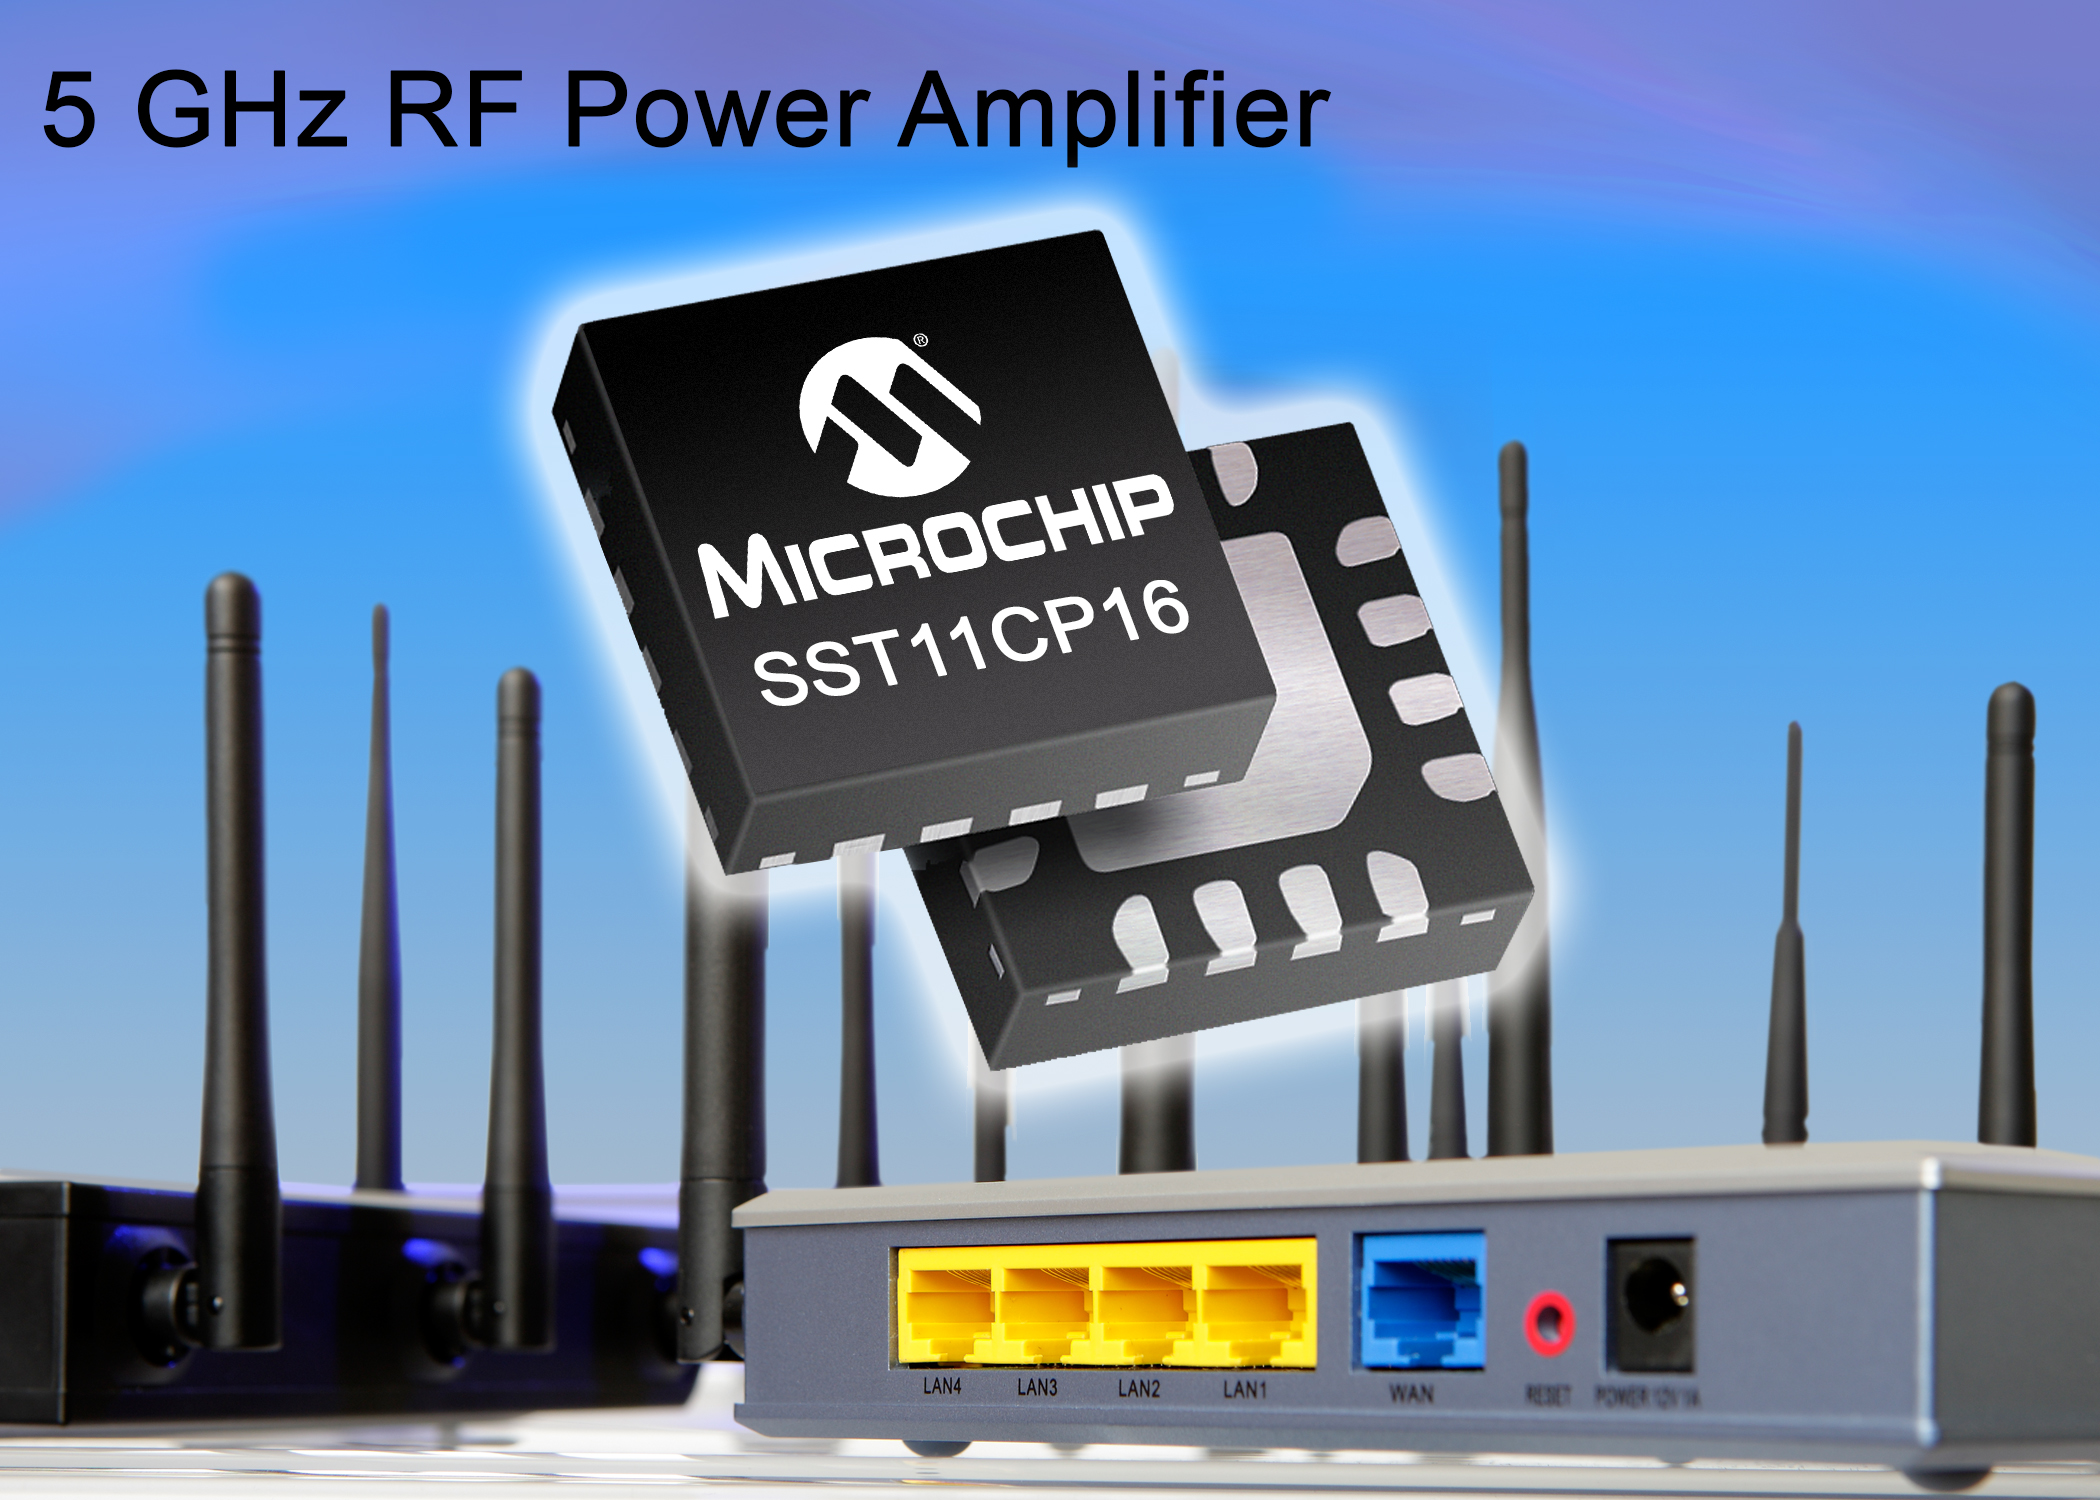 microchips-sst11cp16-5-ghz-rf-power-amplifier_7984170552_o